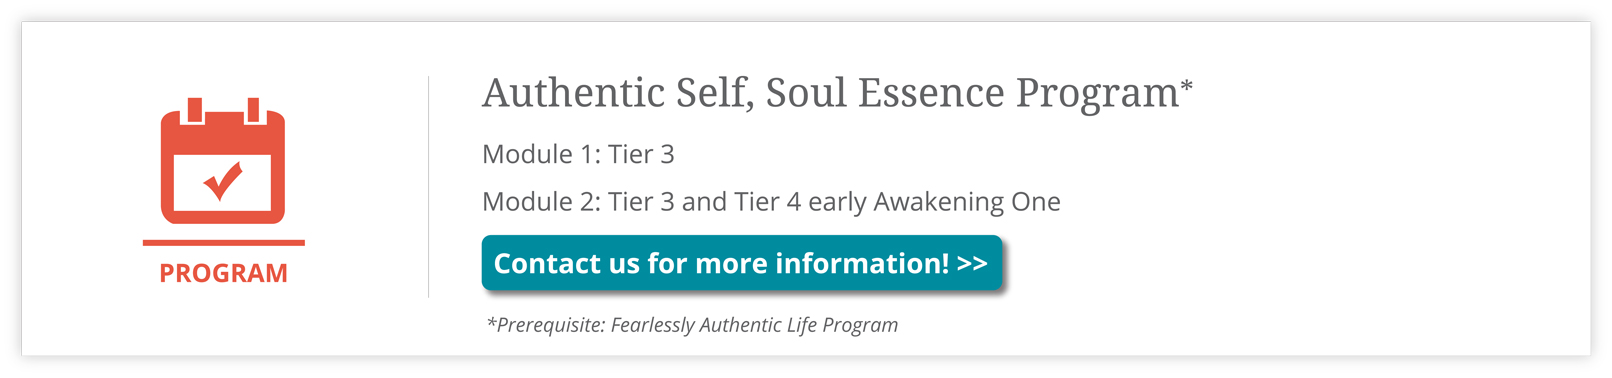 Authentic-Self-Soul-Essence-Program